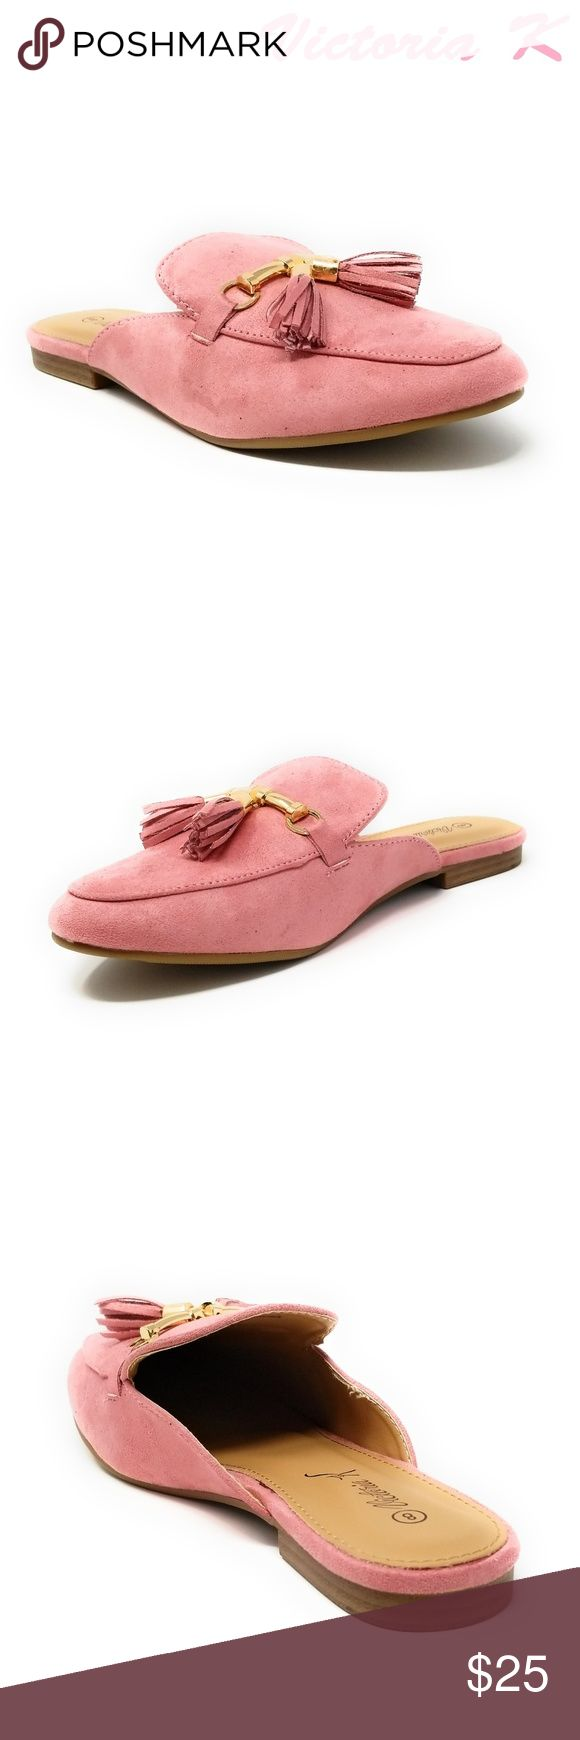 Women Suede Mules with Tassels, HK-7081, Pink Slip on a pair of gorgeous brand new suede flat slippers that make you a fashionable woman. Faux-leather upper. Rubberized outer sole for traction. Sizes 6 through 8 are true, but 9 and 10 run small by a half-size. A true statement in ladies shoes fashion! Victoria K Shoes Flats & Loafers